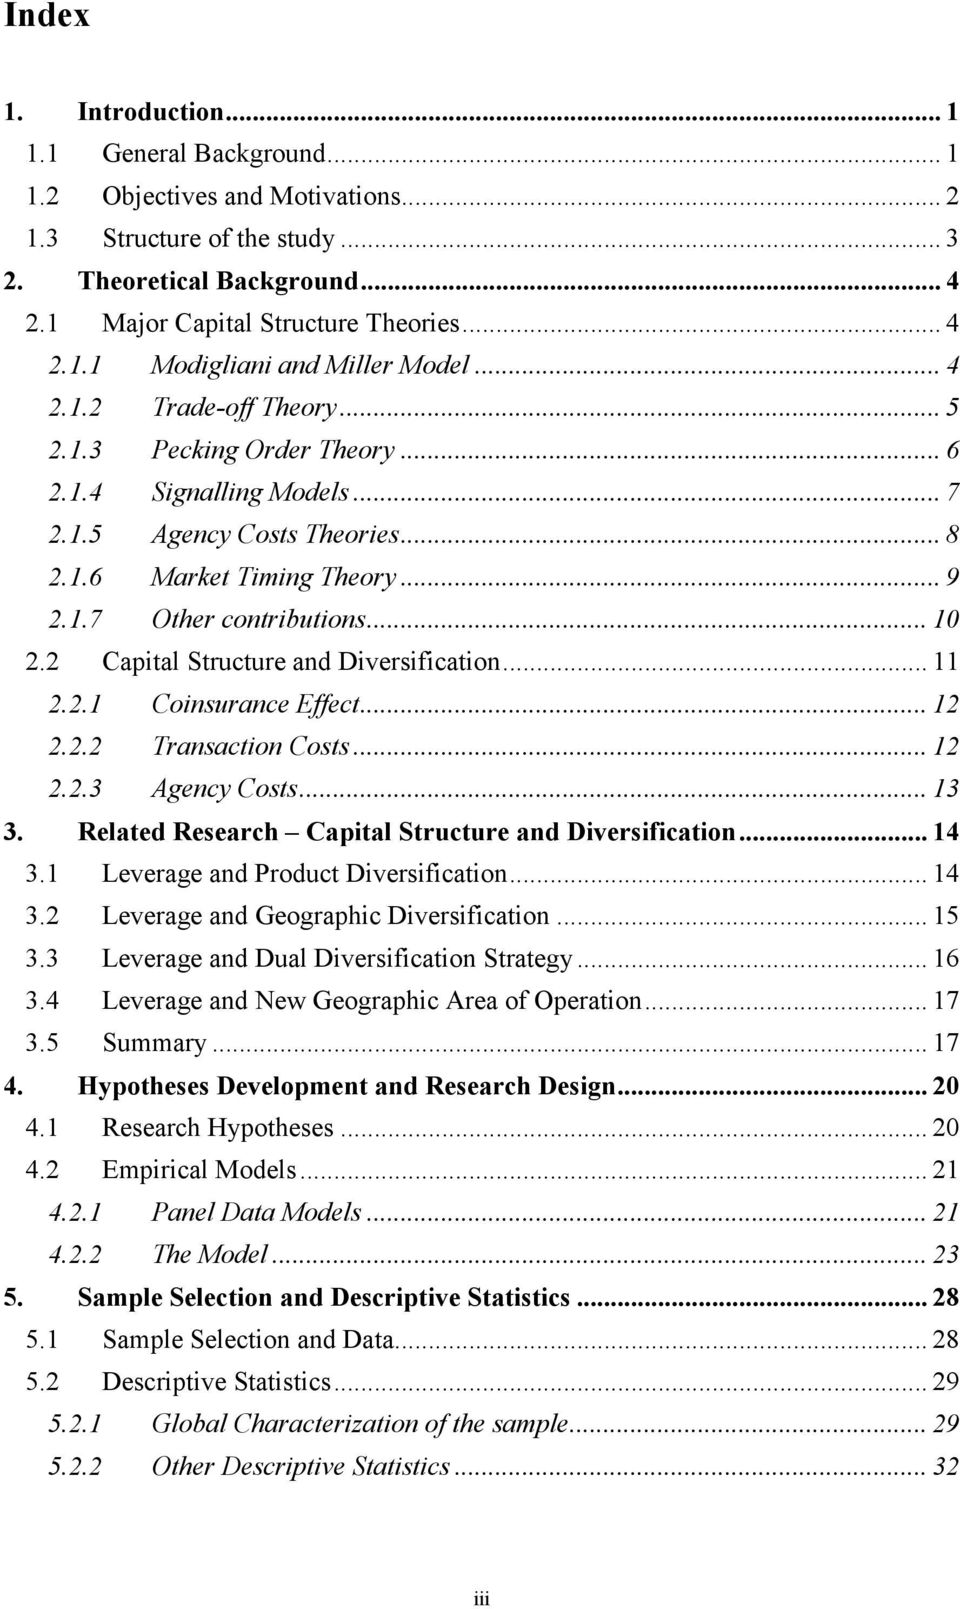 2 Capital Structure and Diversification... 11 2.2.1 Coinsurance Effect... 12 2.2.2 Transaction Costs... 12 2.2.3 Agency Costs... 13 3. Related Research Capital Structure and Diversification... 14 3.